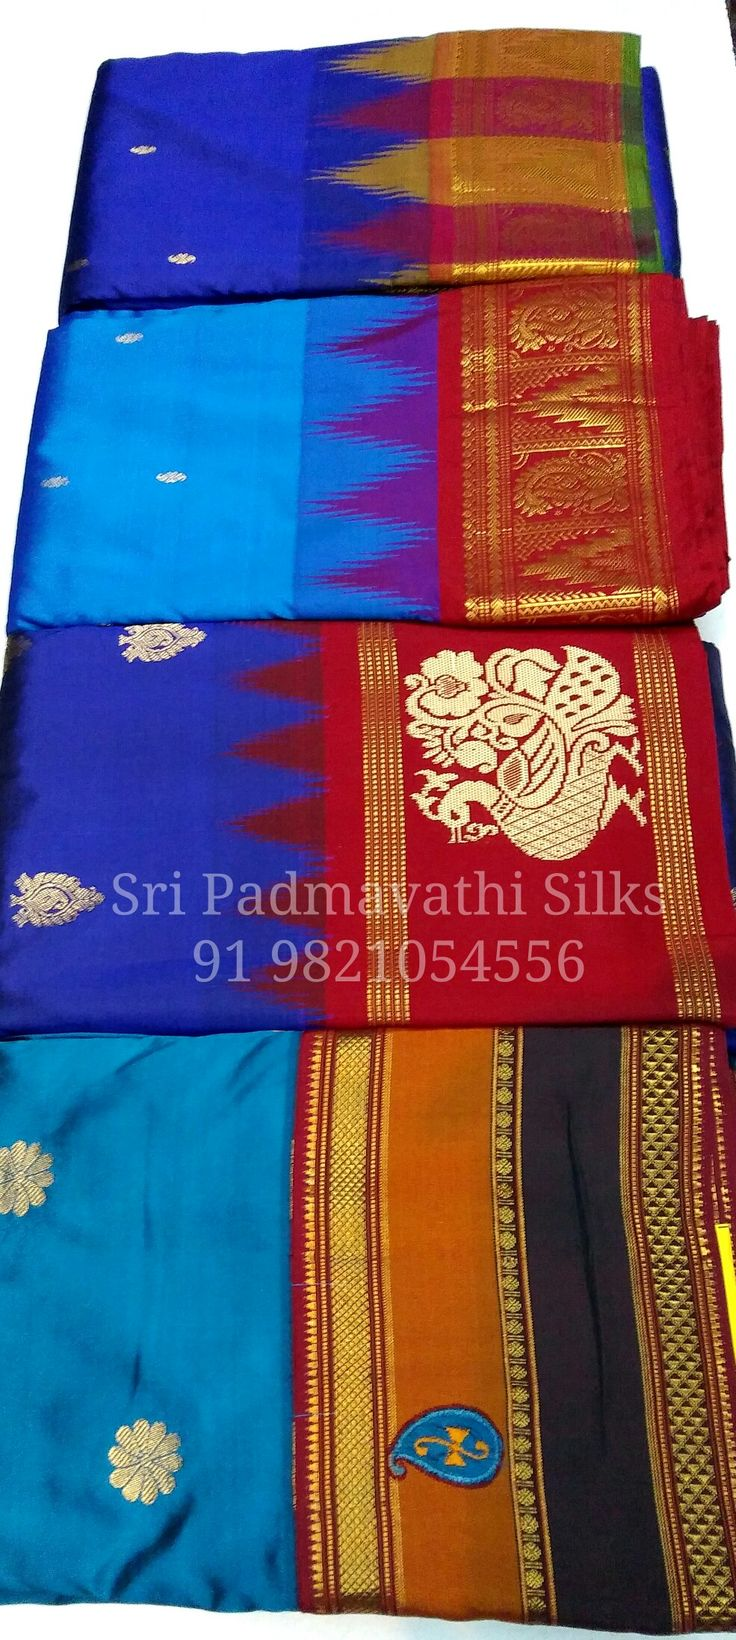 Varunaa Collection - Kancheepuram handloom pure silk sarees with traditional contrasts and temple border and gold zari butti on the drape. For an elegant evening look at parties and receptions. Book now 91 9821054556 Email: geetharavi25@gmail.com Sri Padmavathi Silks, the only South Indian store in Dombivli, India. Kancheepuram handloom pure silk sarees in Mumbai. All credit and debit cards accepted. International shipping available. Wholesale orders accepted.